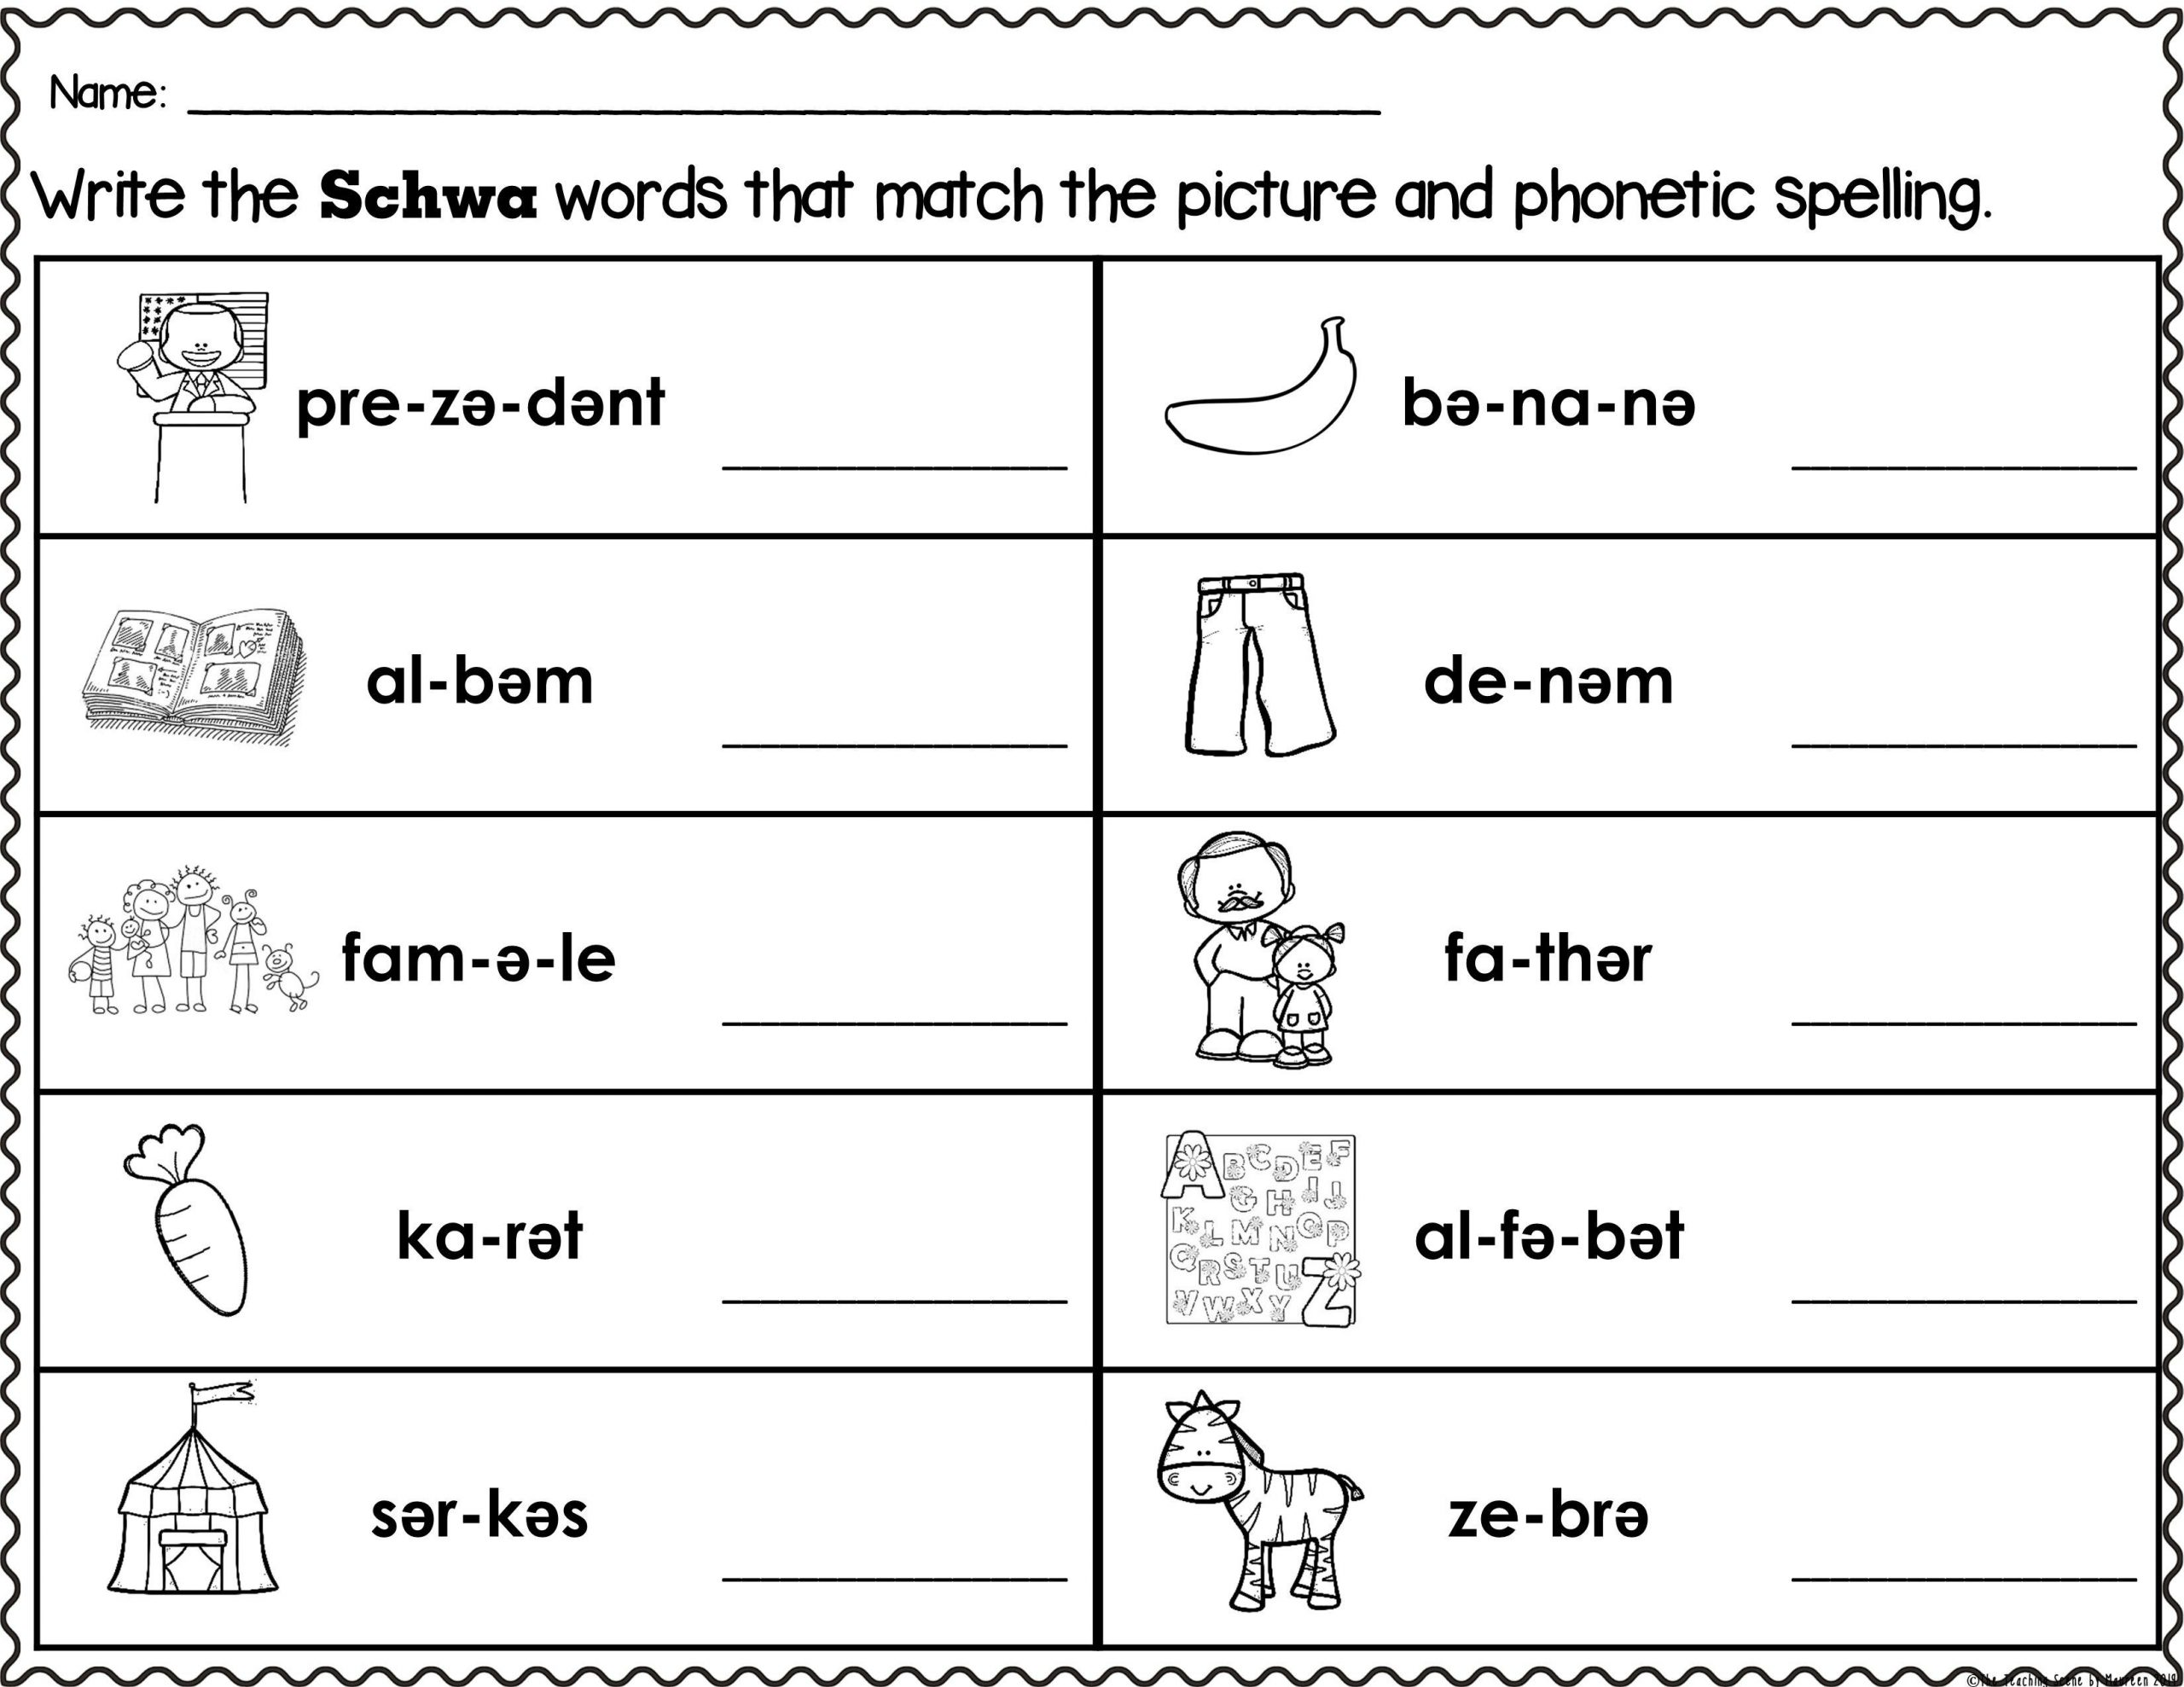 Schwa sound Worksheets Grade 2 Schwa Words Worksheets